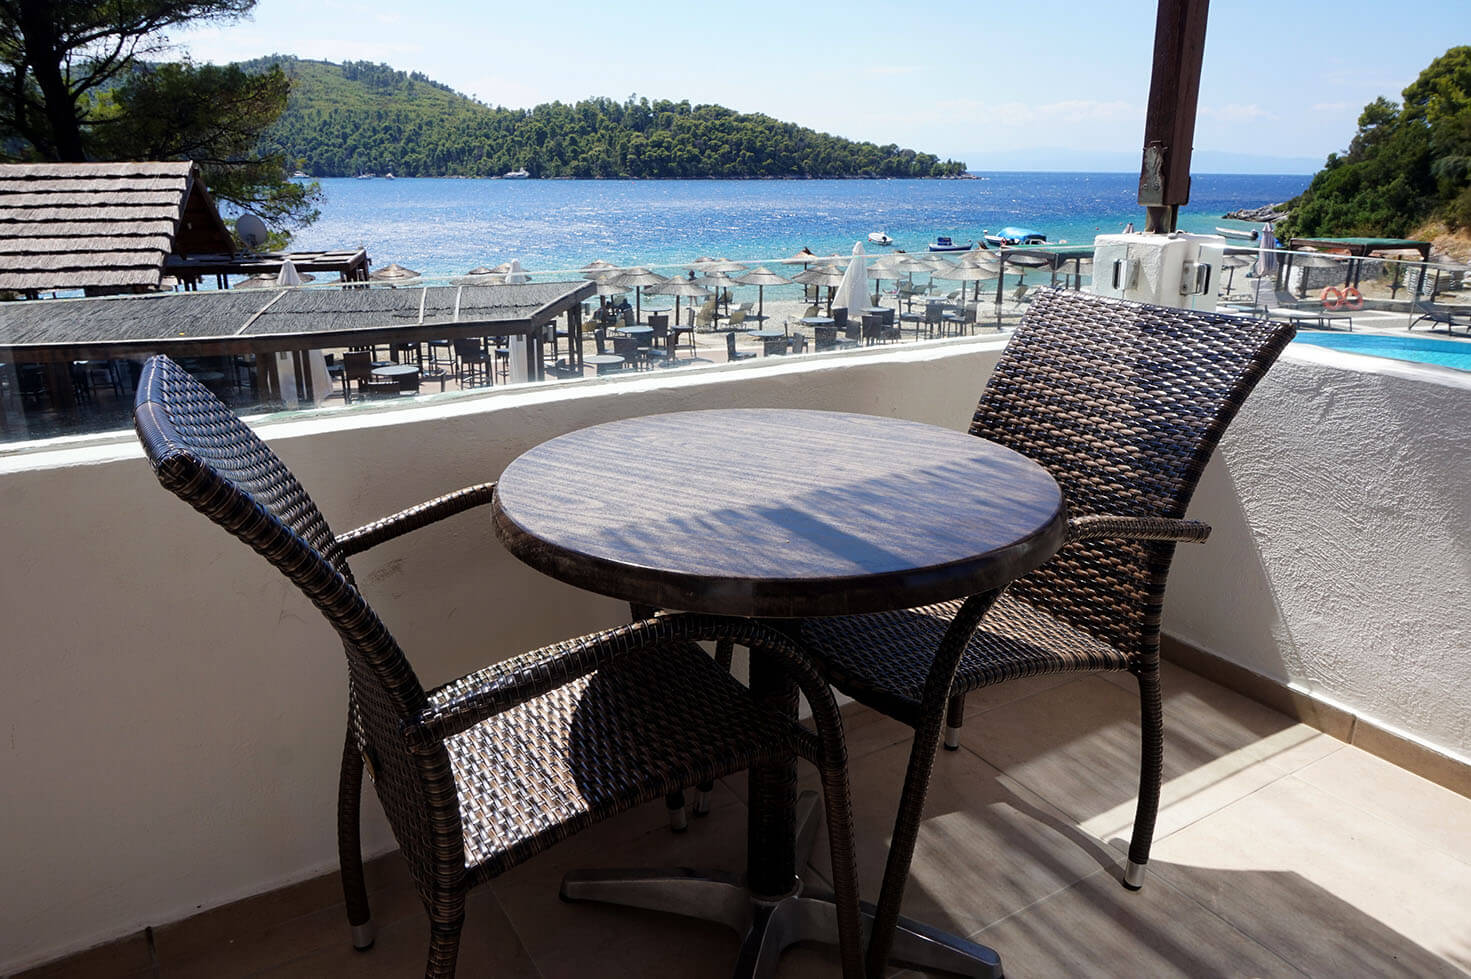 Where to Stay in Skopelos